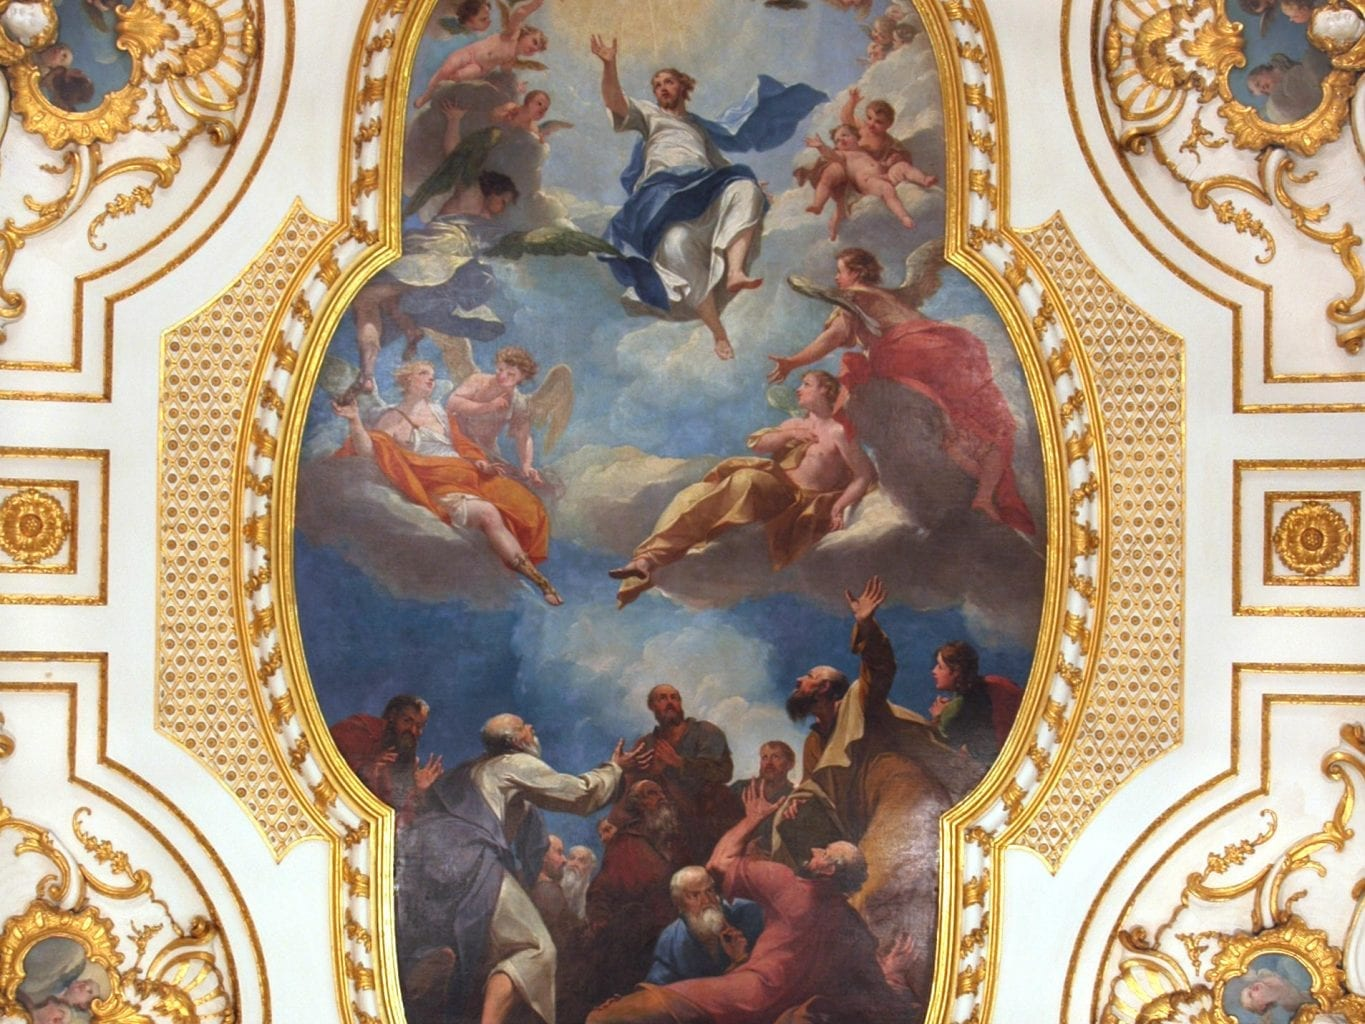 solemnity of the ascension of Christ, we ascended with him through Love